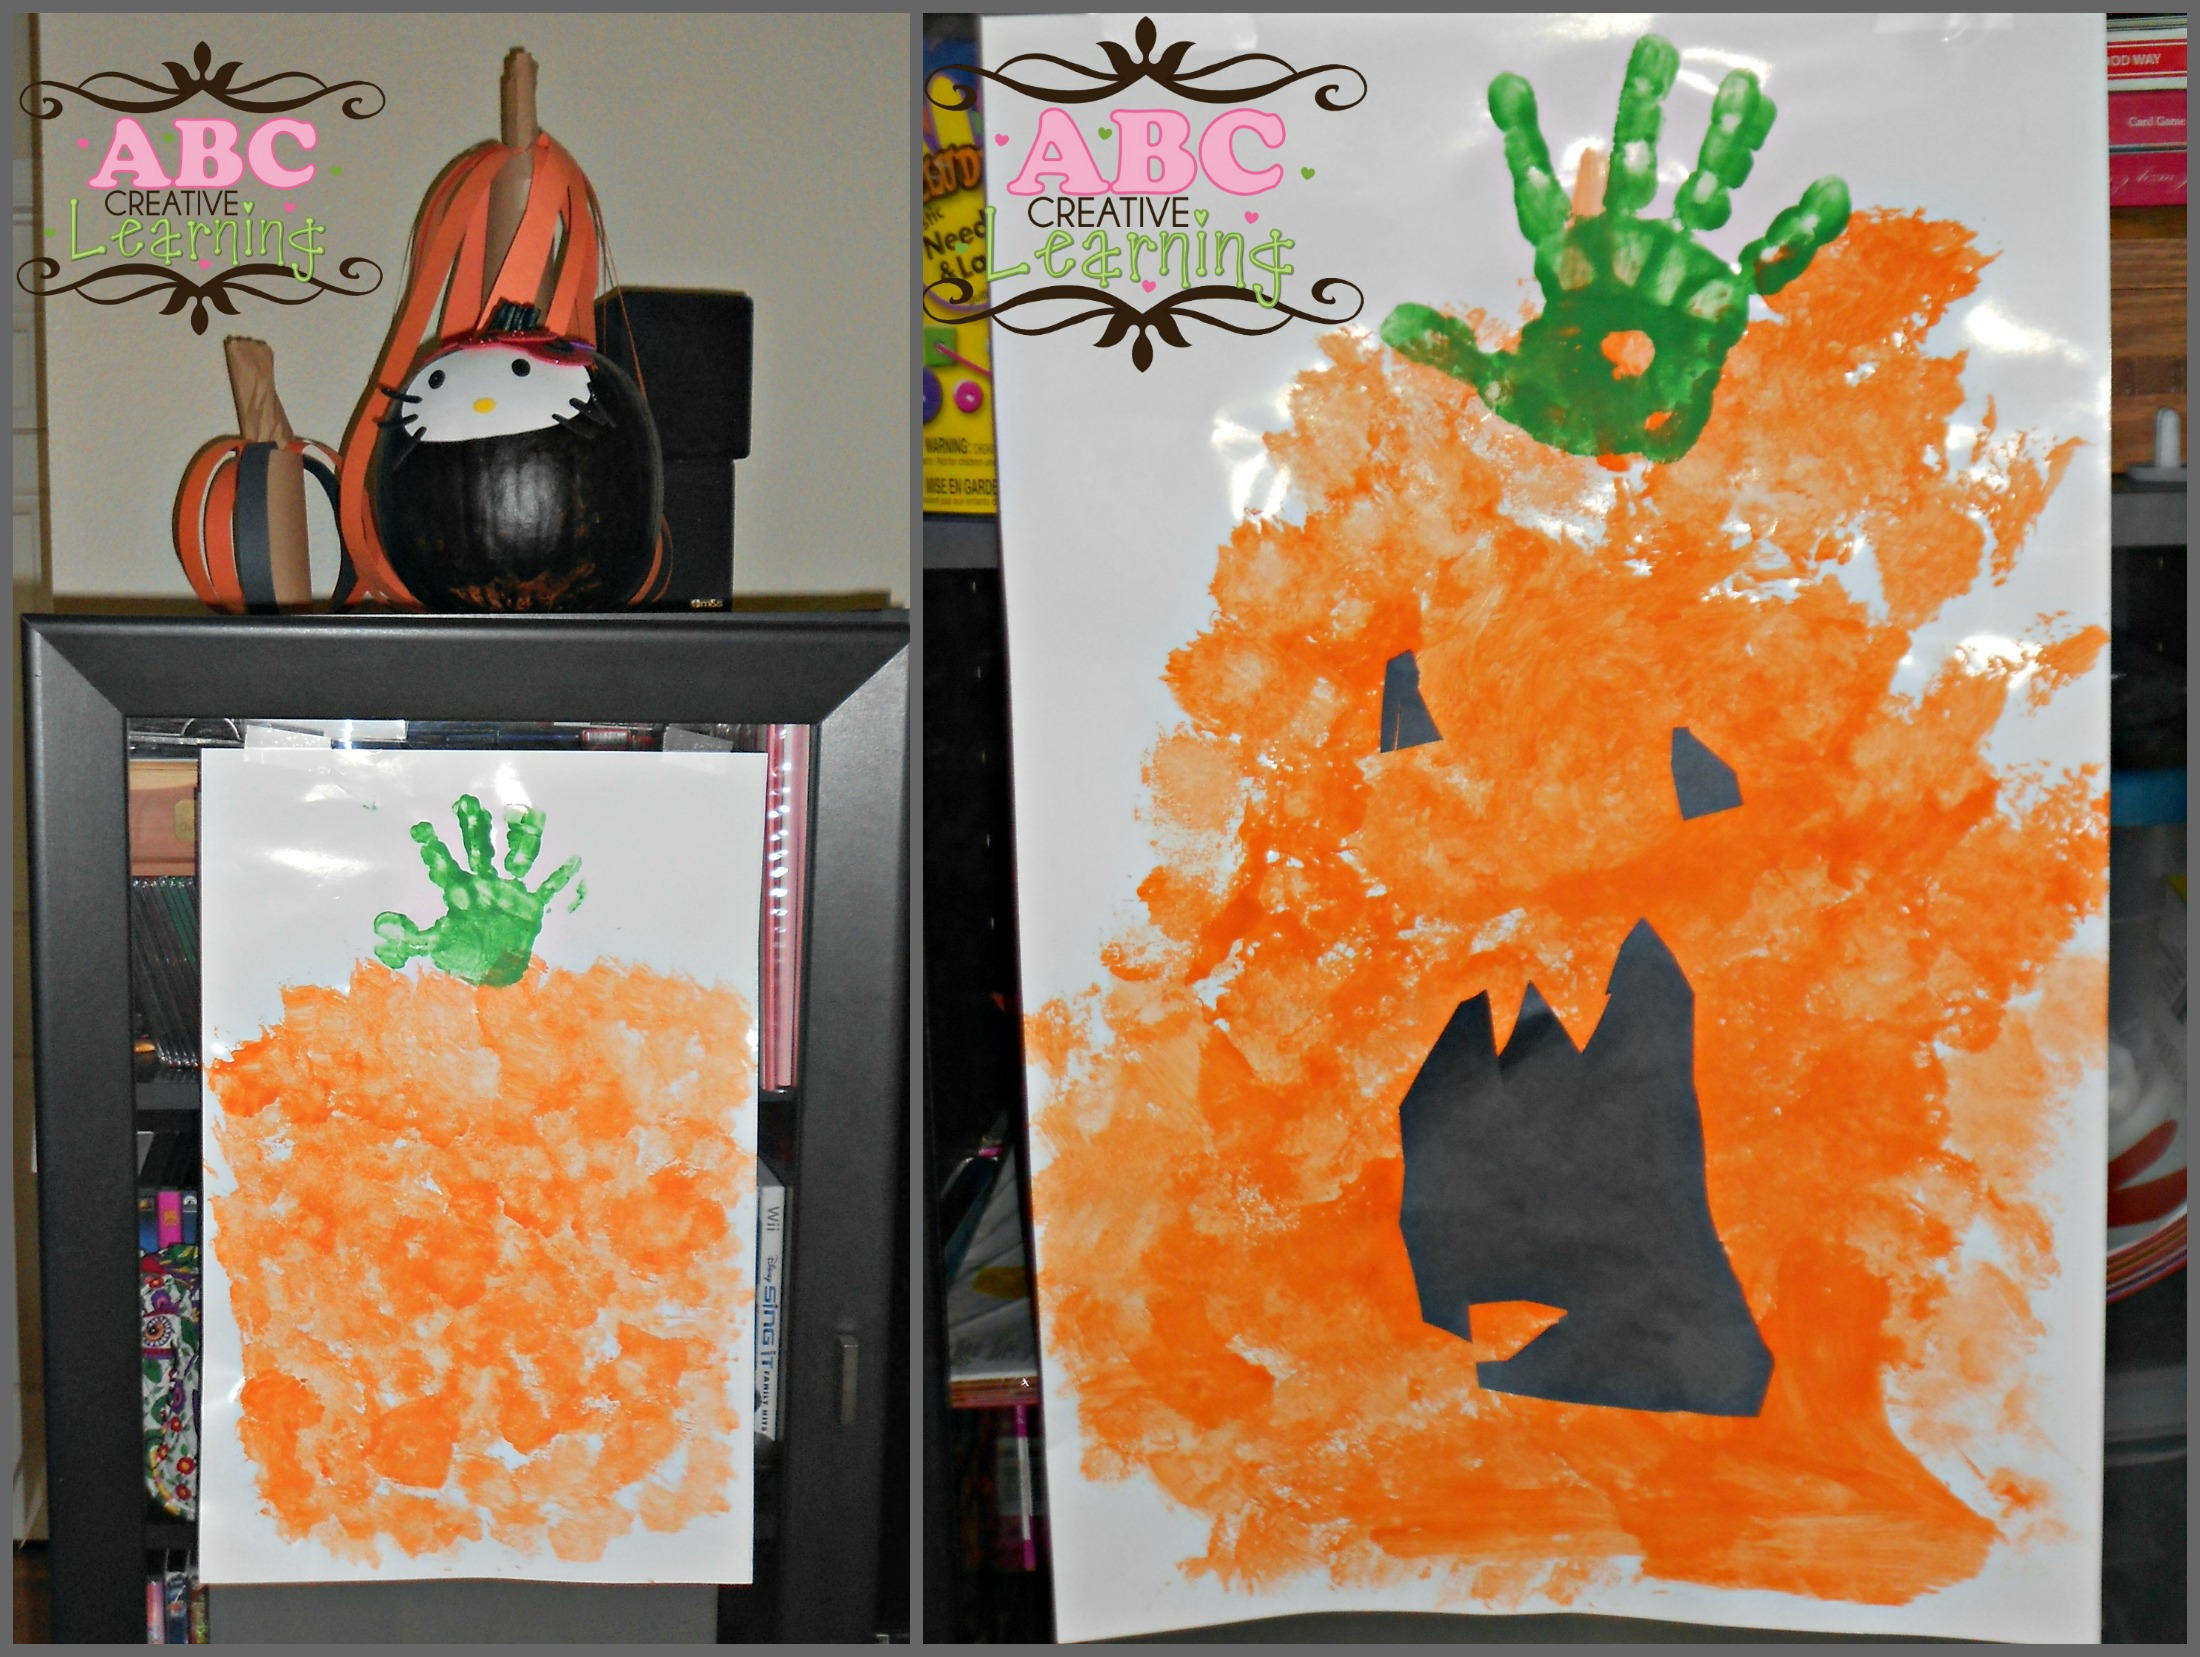 Handprint Sponge Pumpkin Jack O Lantern Arts and Crafts